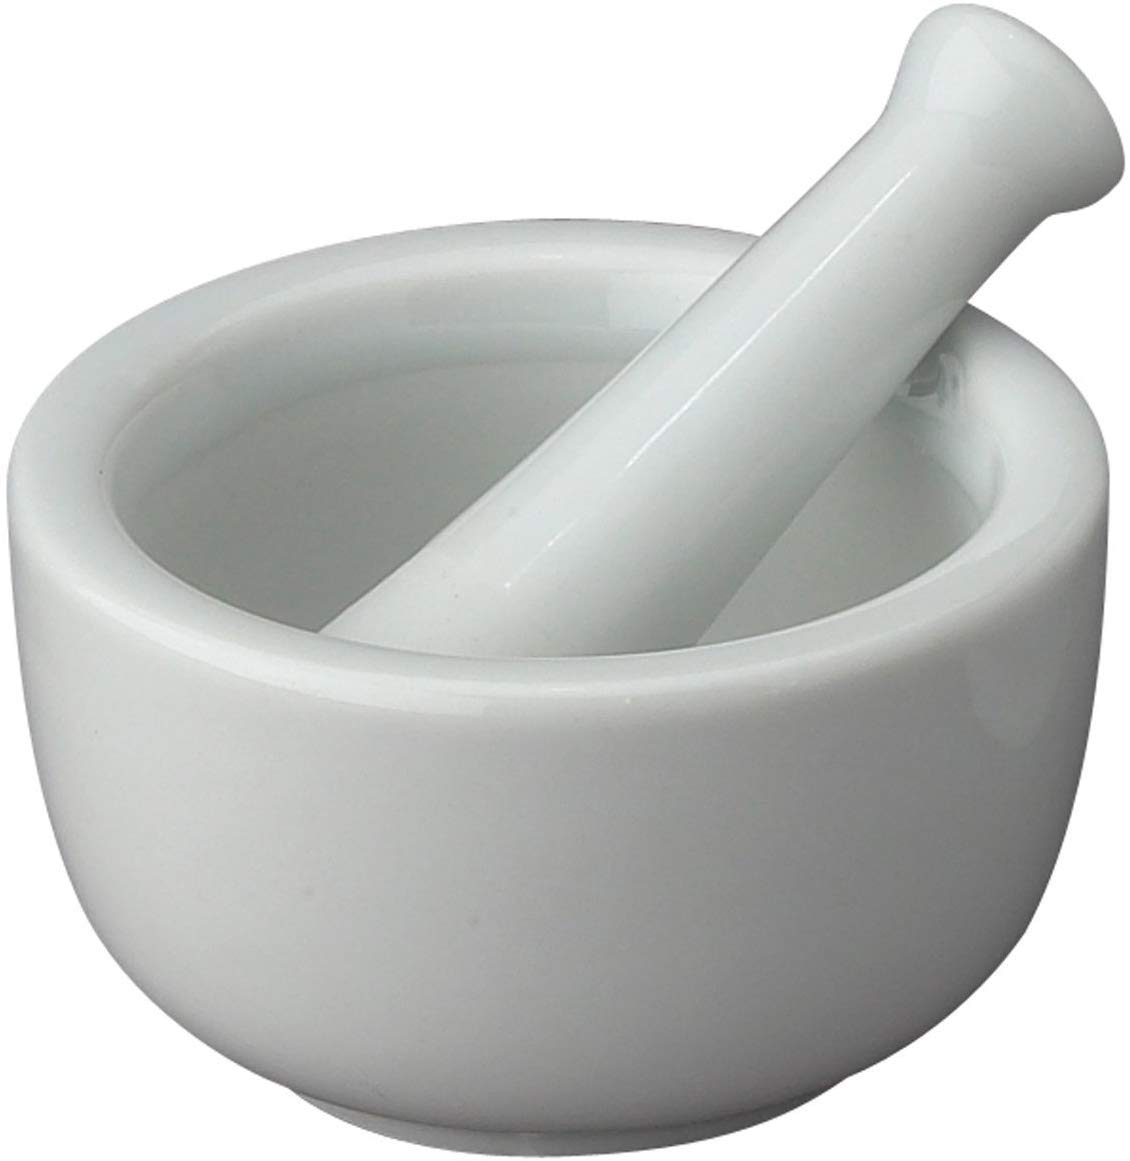 Hic porcelain mortar and pestle